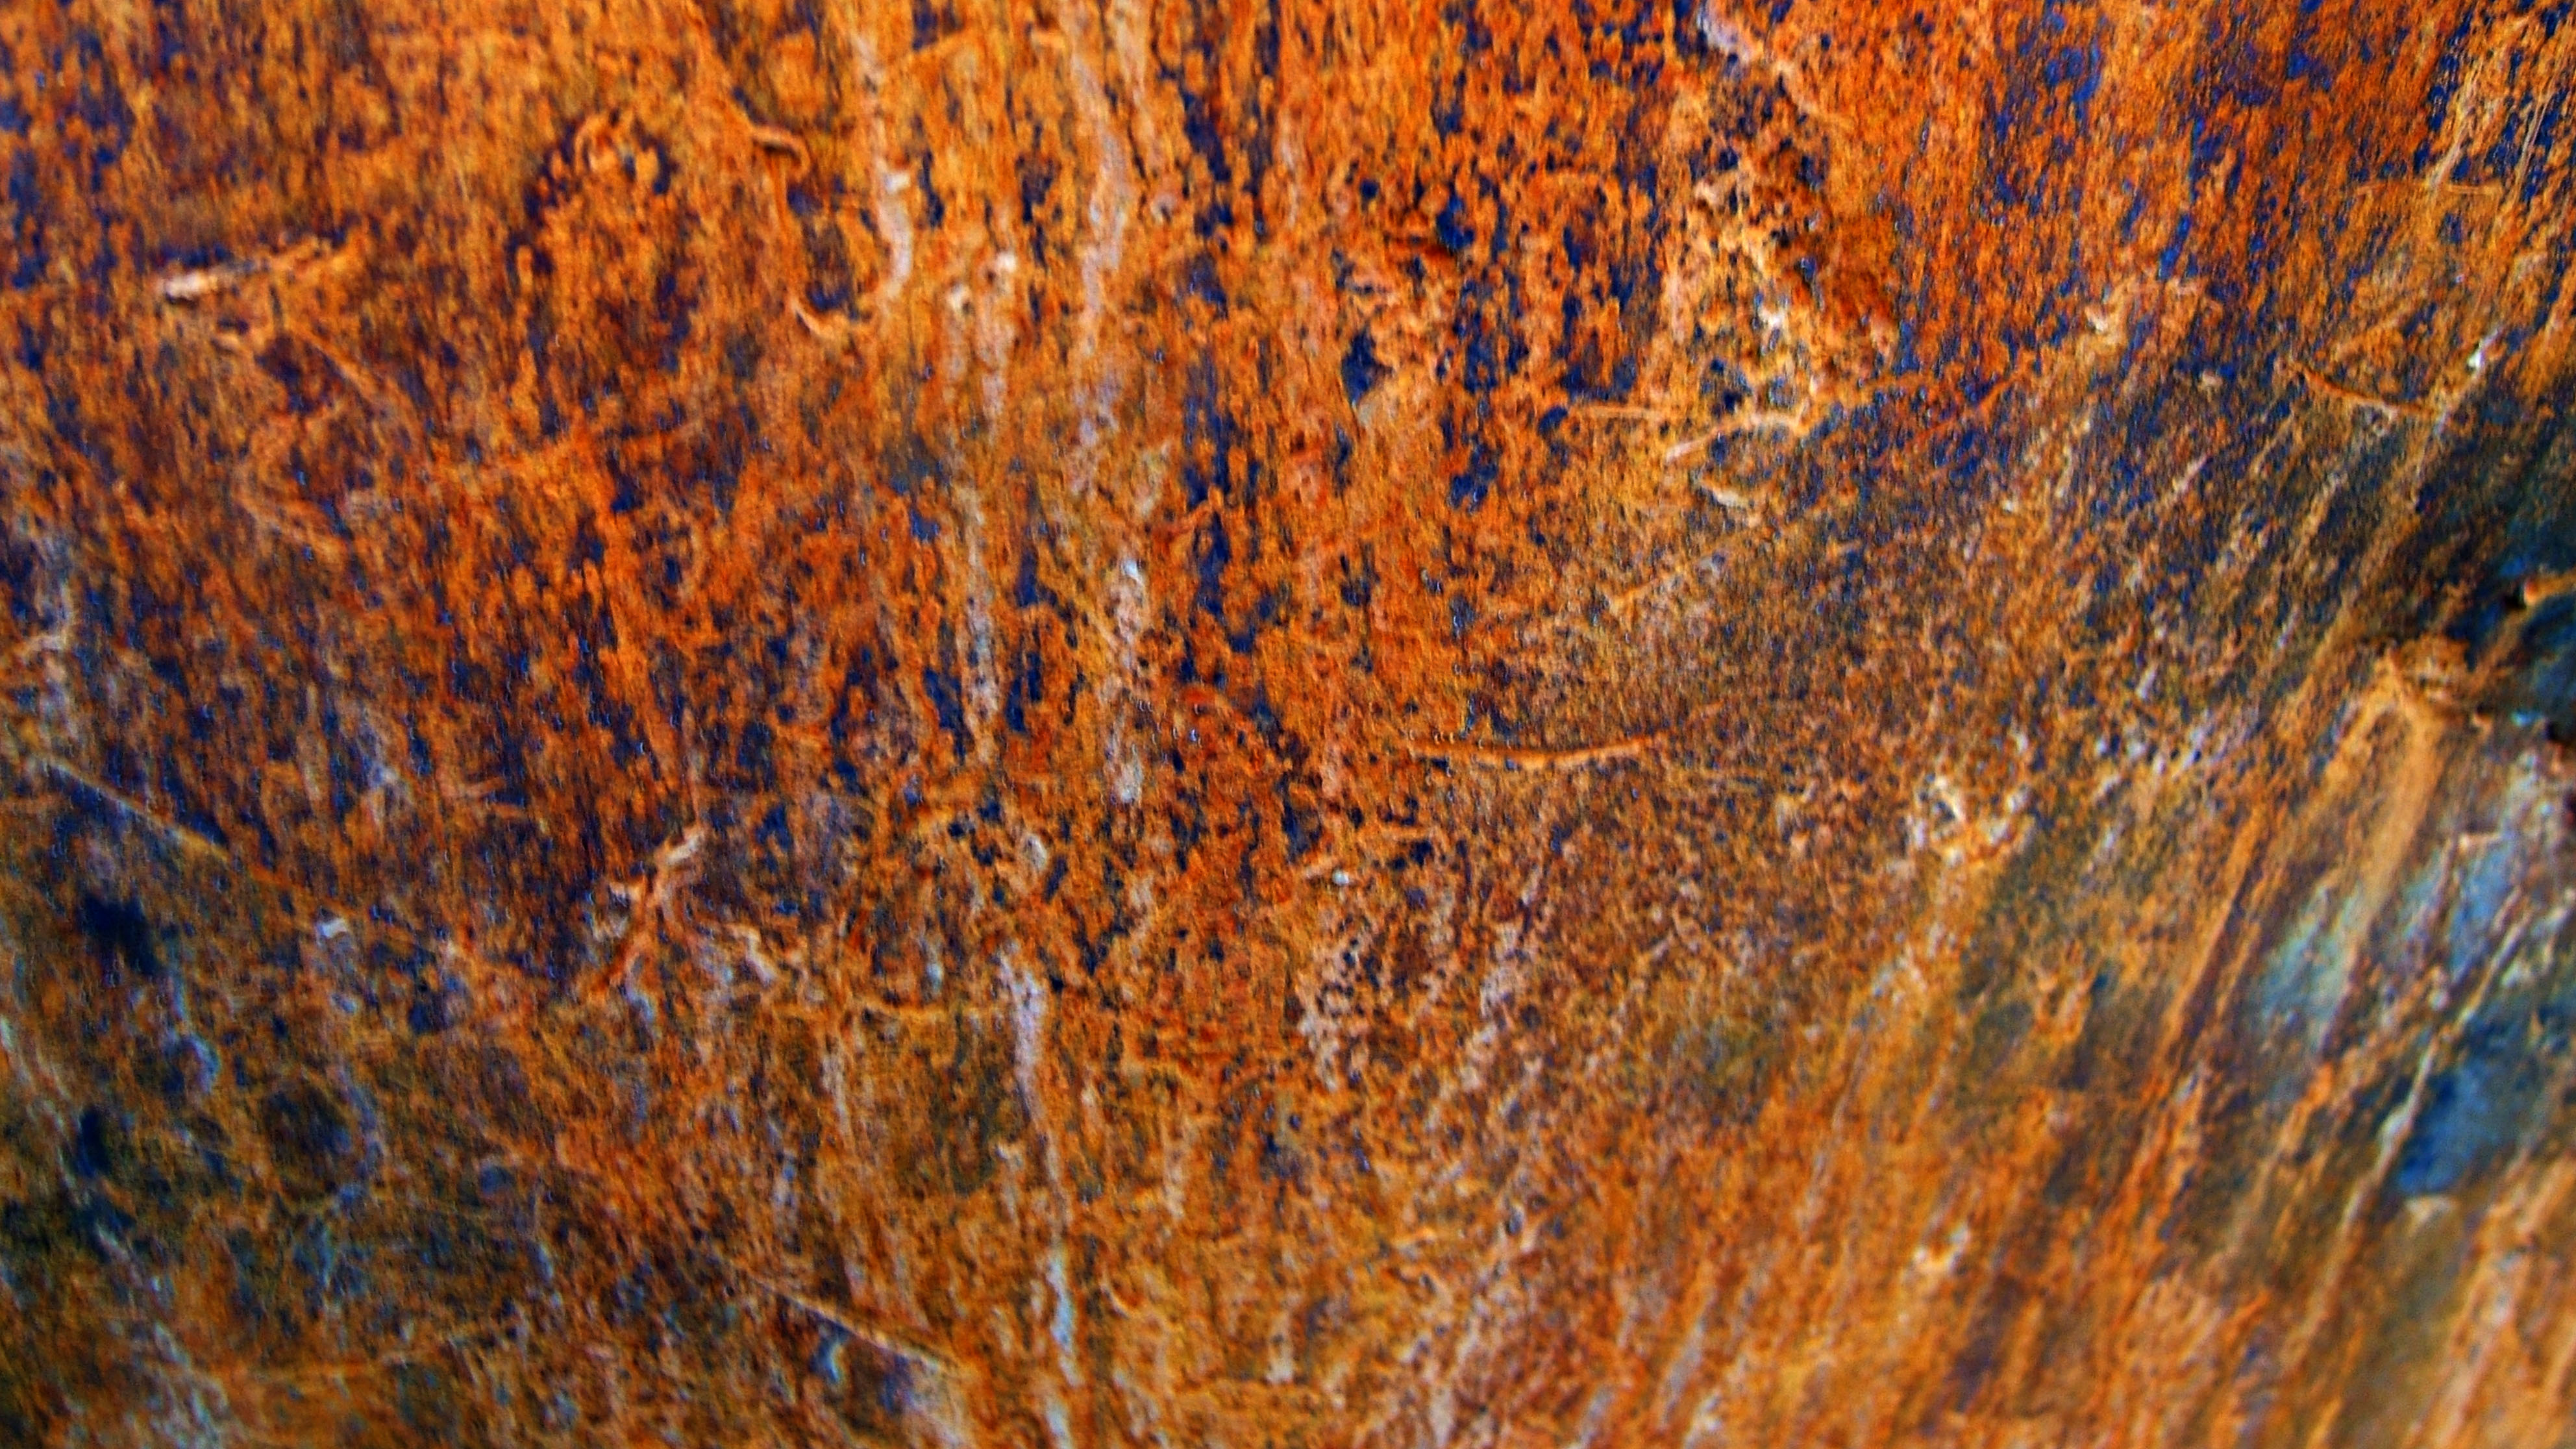 Textures Steel Rusted Metal Sheeting Machinary 19